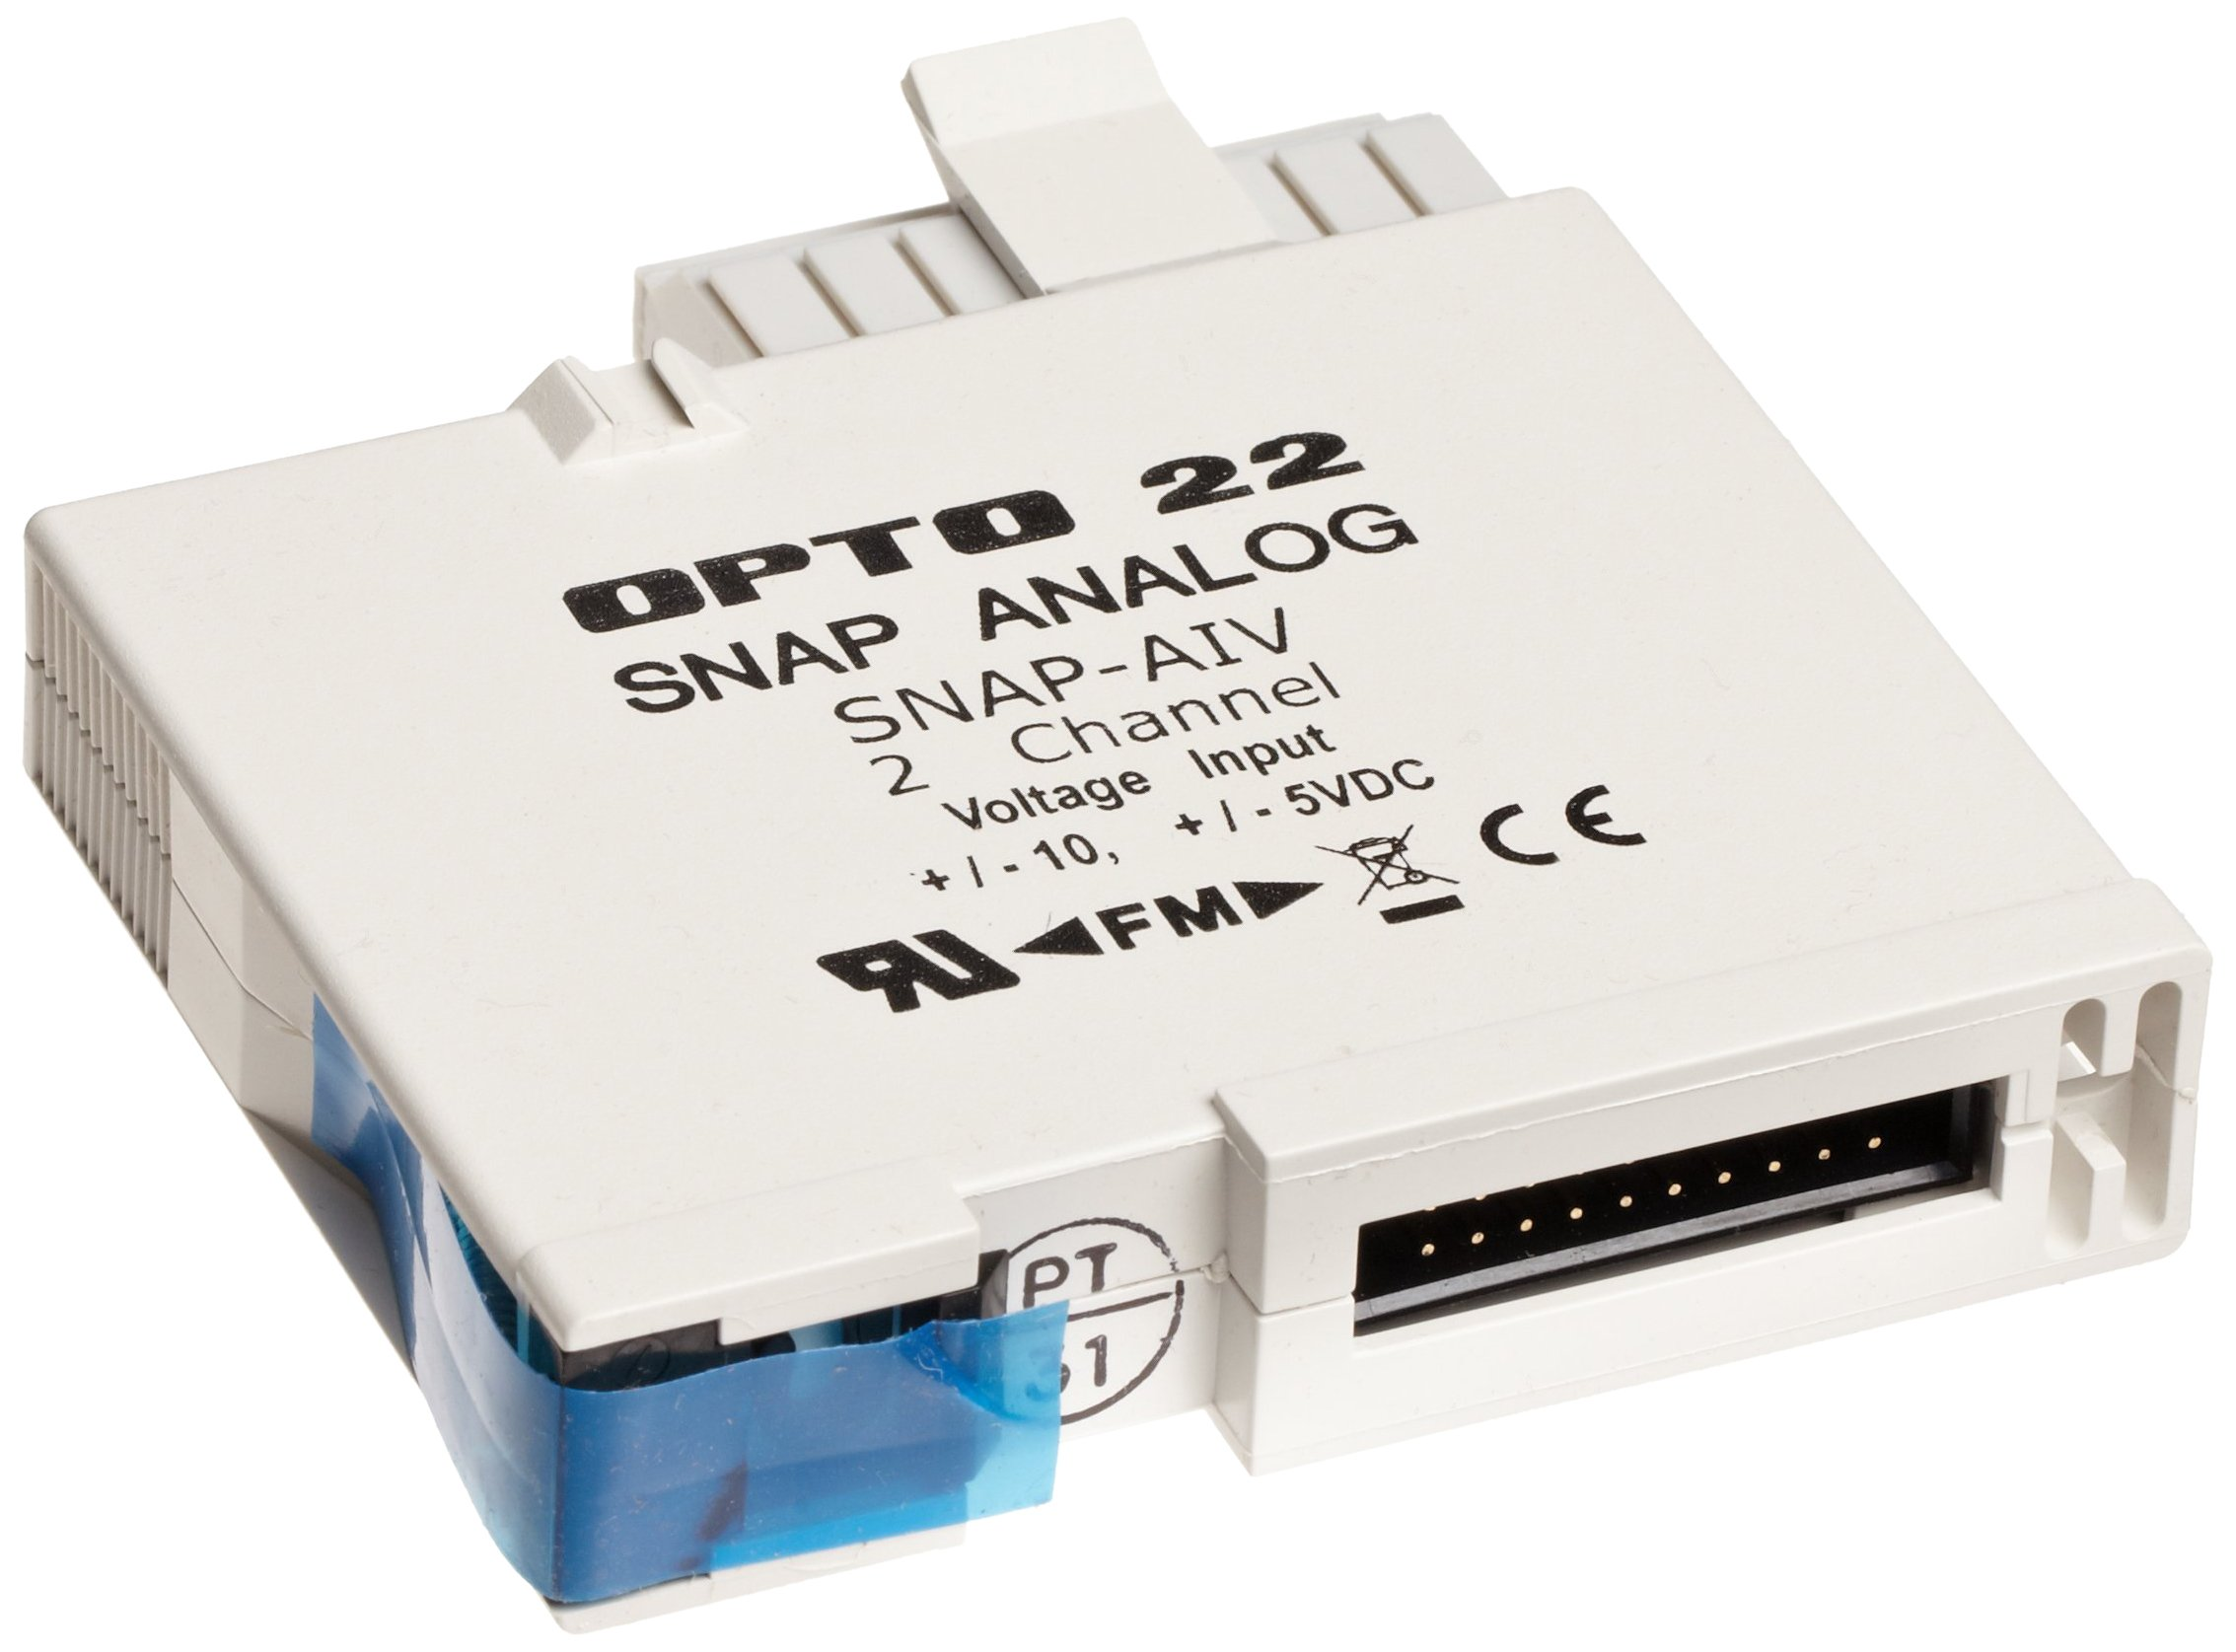 Opto 22 SNAP-AIV - SNAP Analog Input Module, 2-Channel, -10 VDC to +10 VDC or -5 VDC to +5 VDC Input by Opto 22 (Image #1)